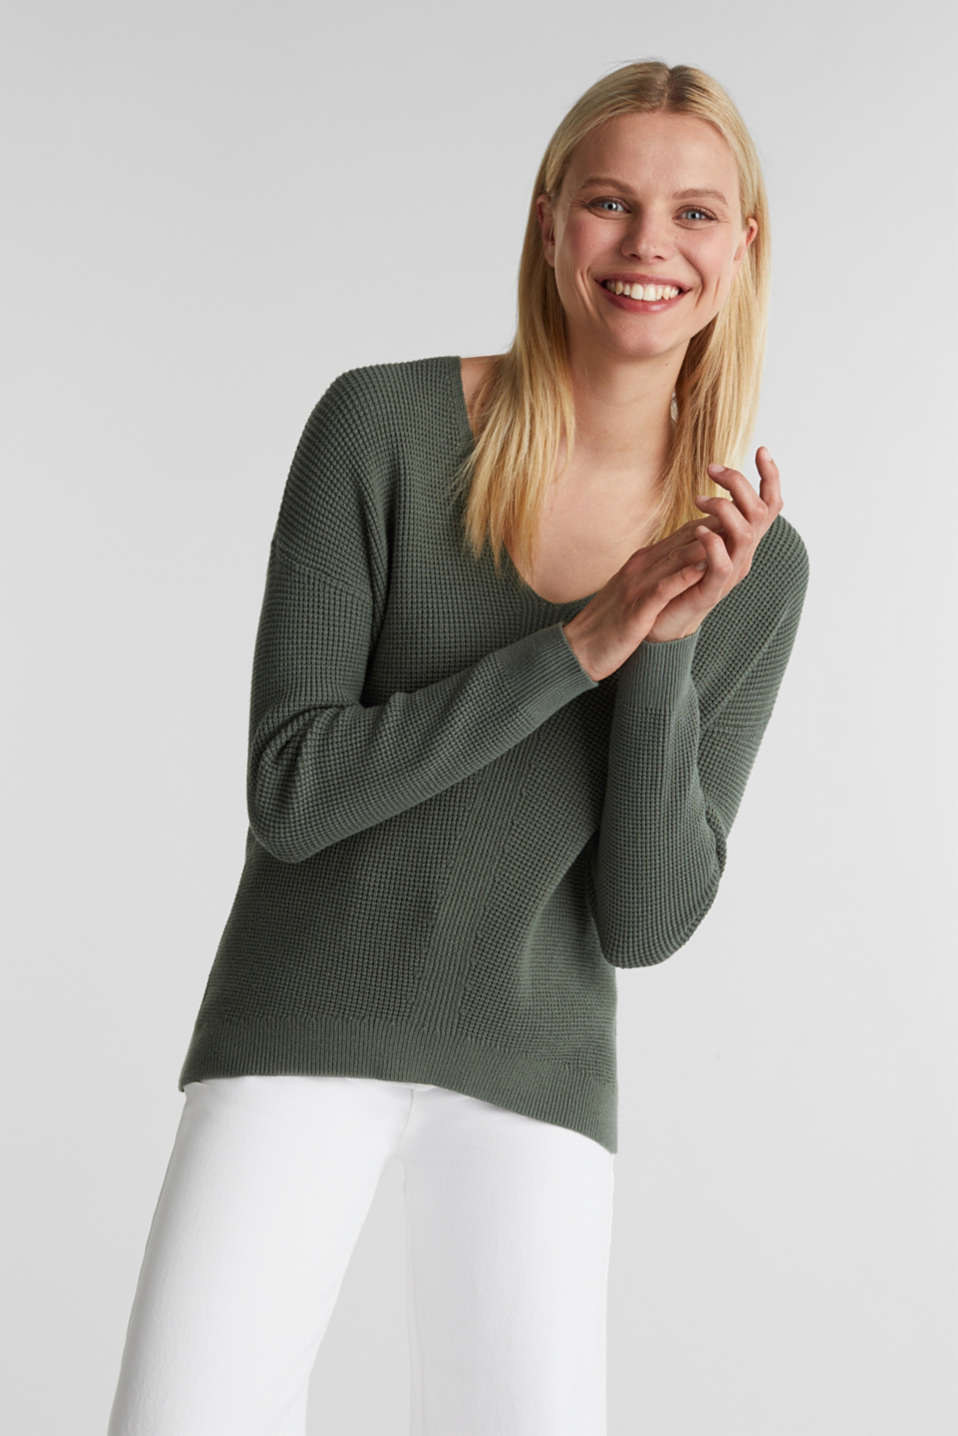 Jumper with a rice grain texture, KHAKI GREEN, detail image number 5